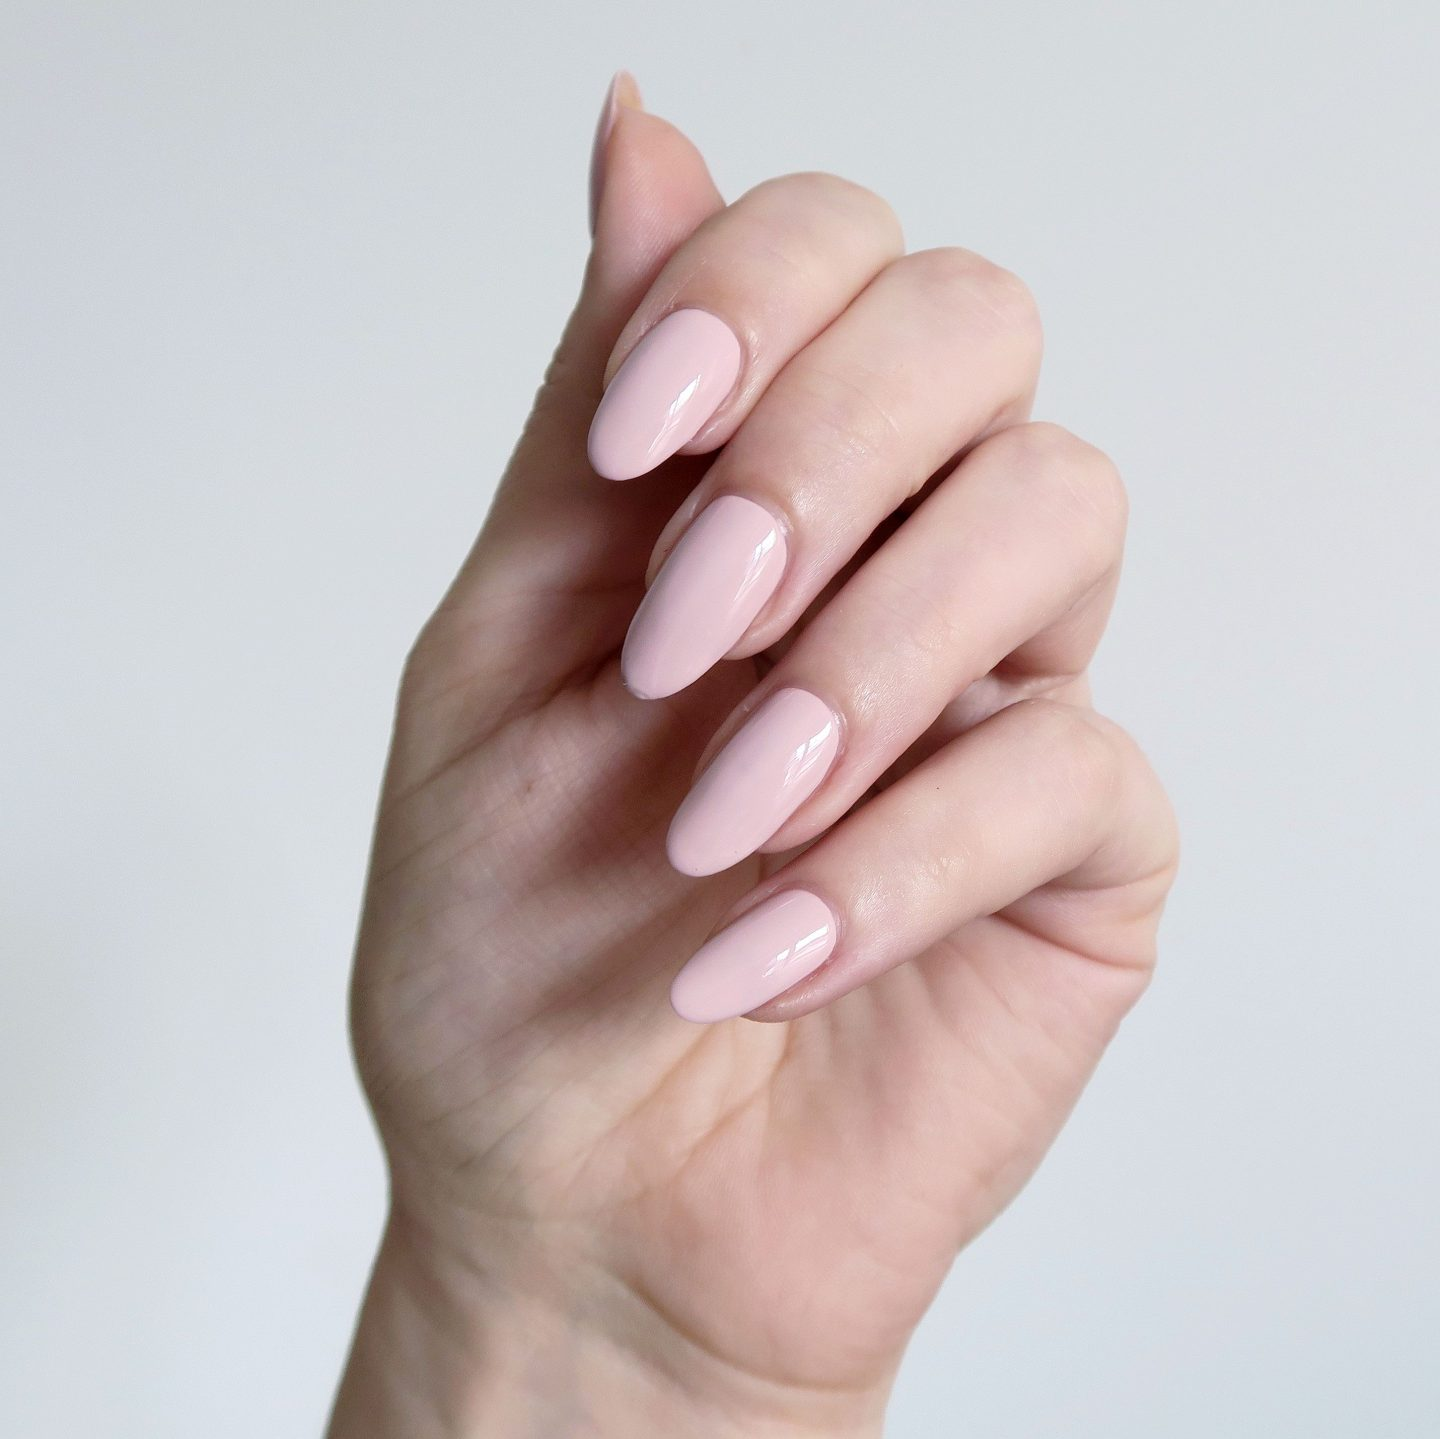 Repin and click to see my review of the new Morgan Taylor Color Of Petals collection. Morgan Taylor 'I Feel Flower-ful' - a light nude creme nail polish inspiration. Spring manicure inspiration. #talontedlex